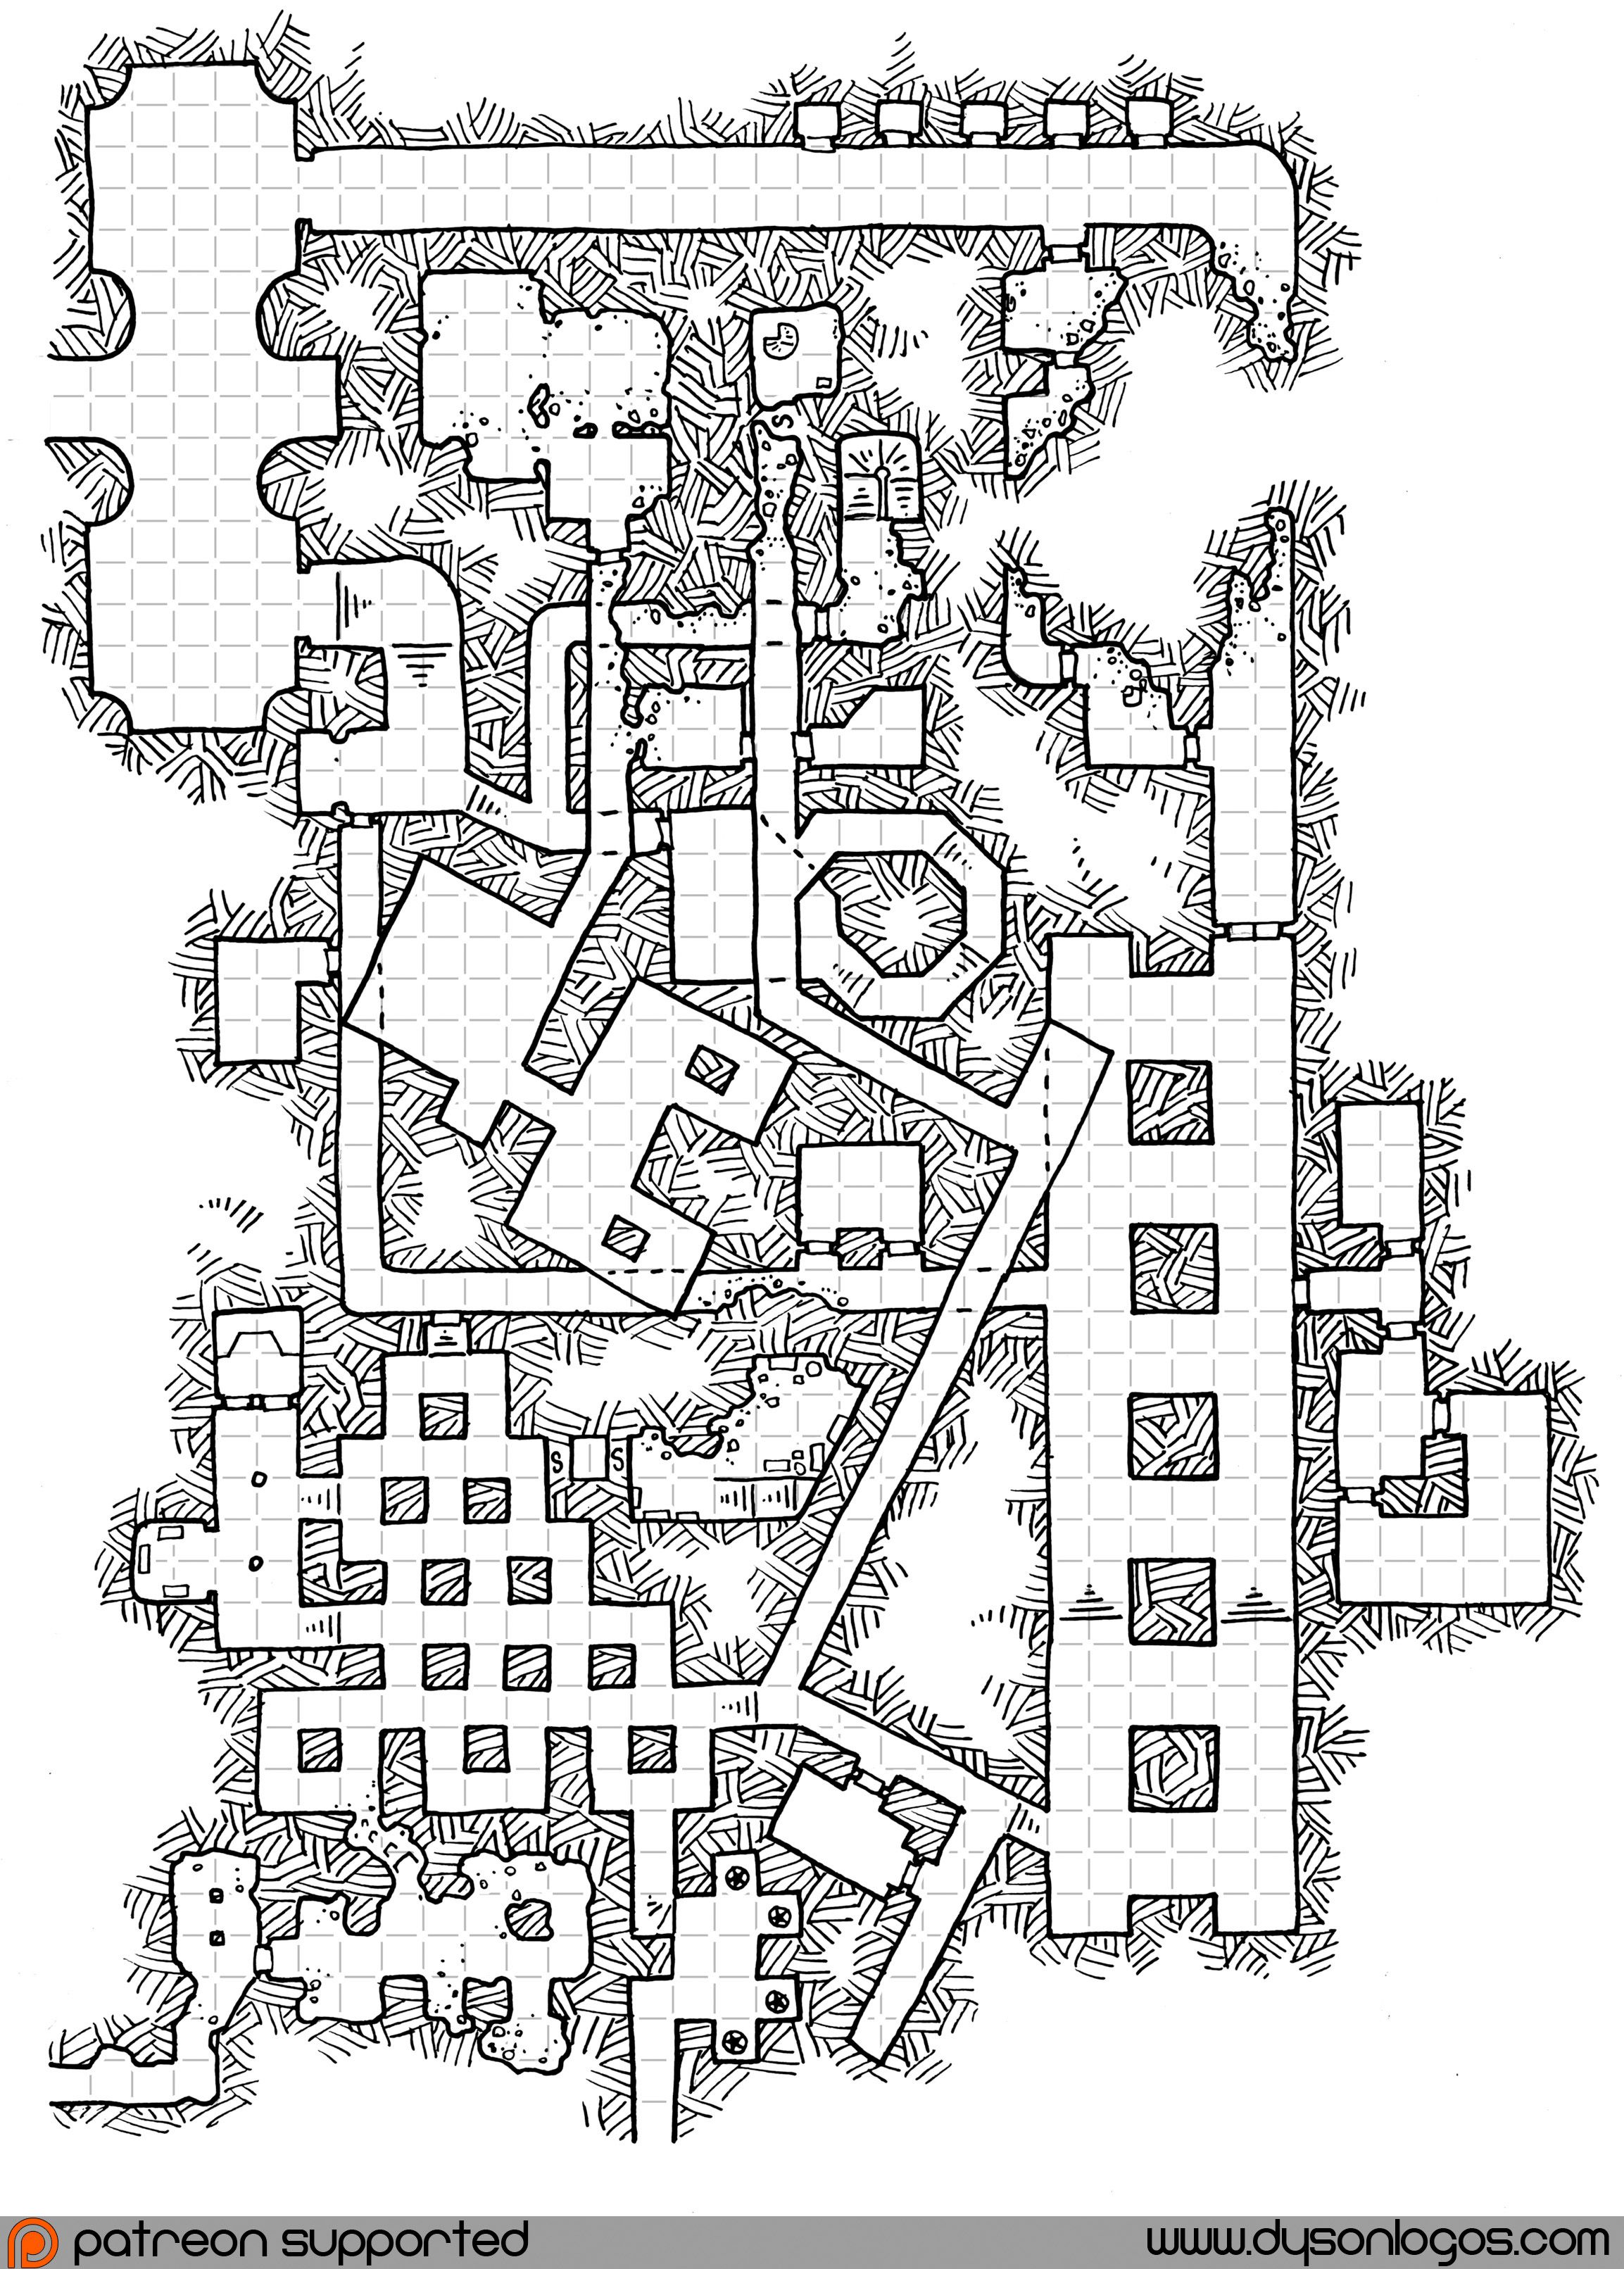 Pin By Robert Morris On Cartography Amp Rpg Maps 5 In